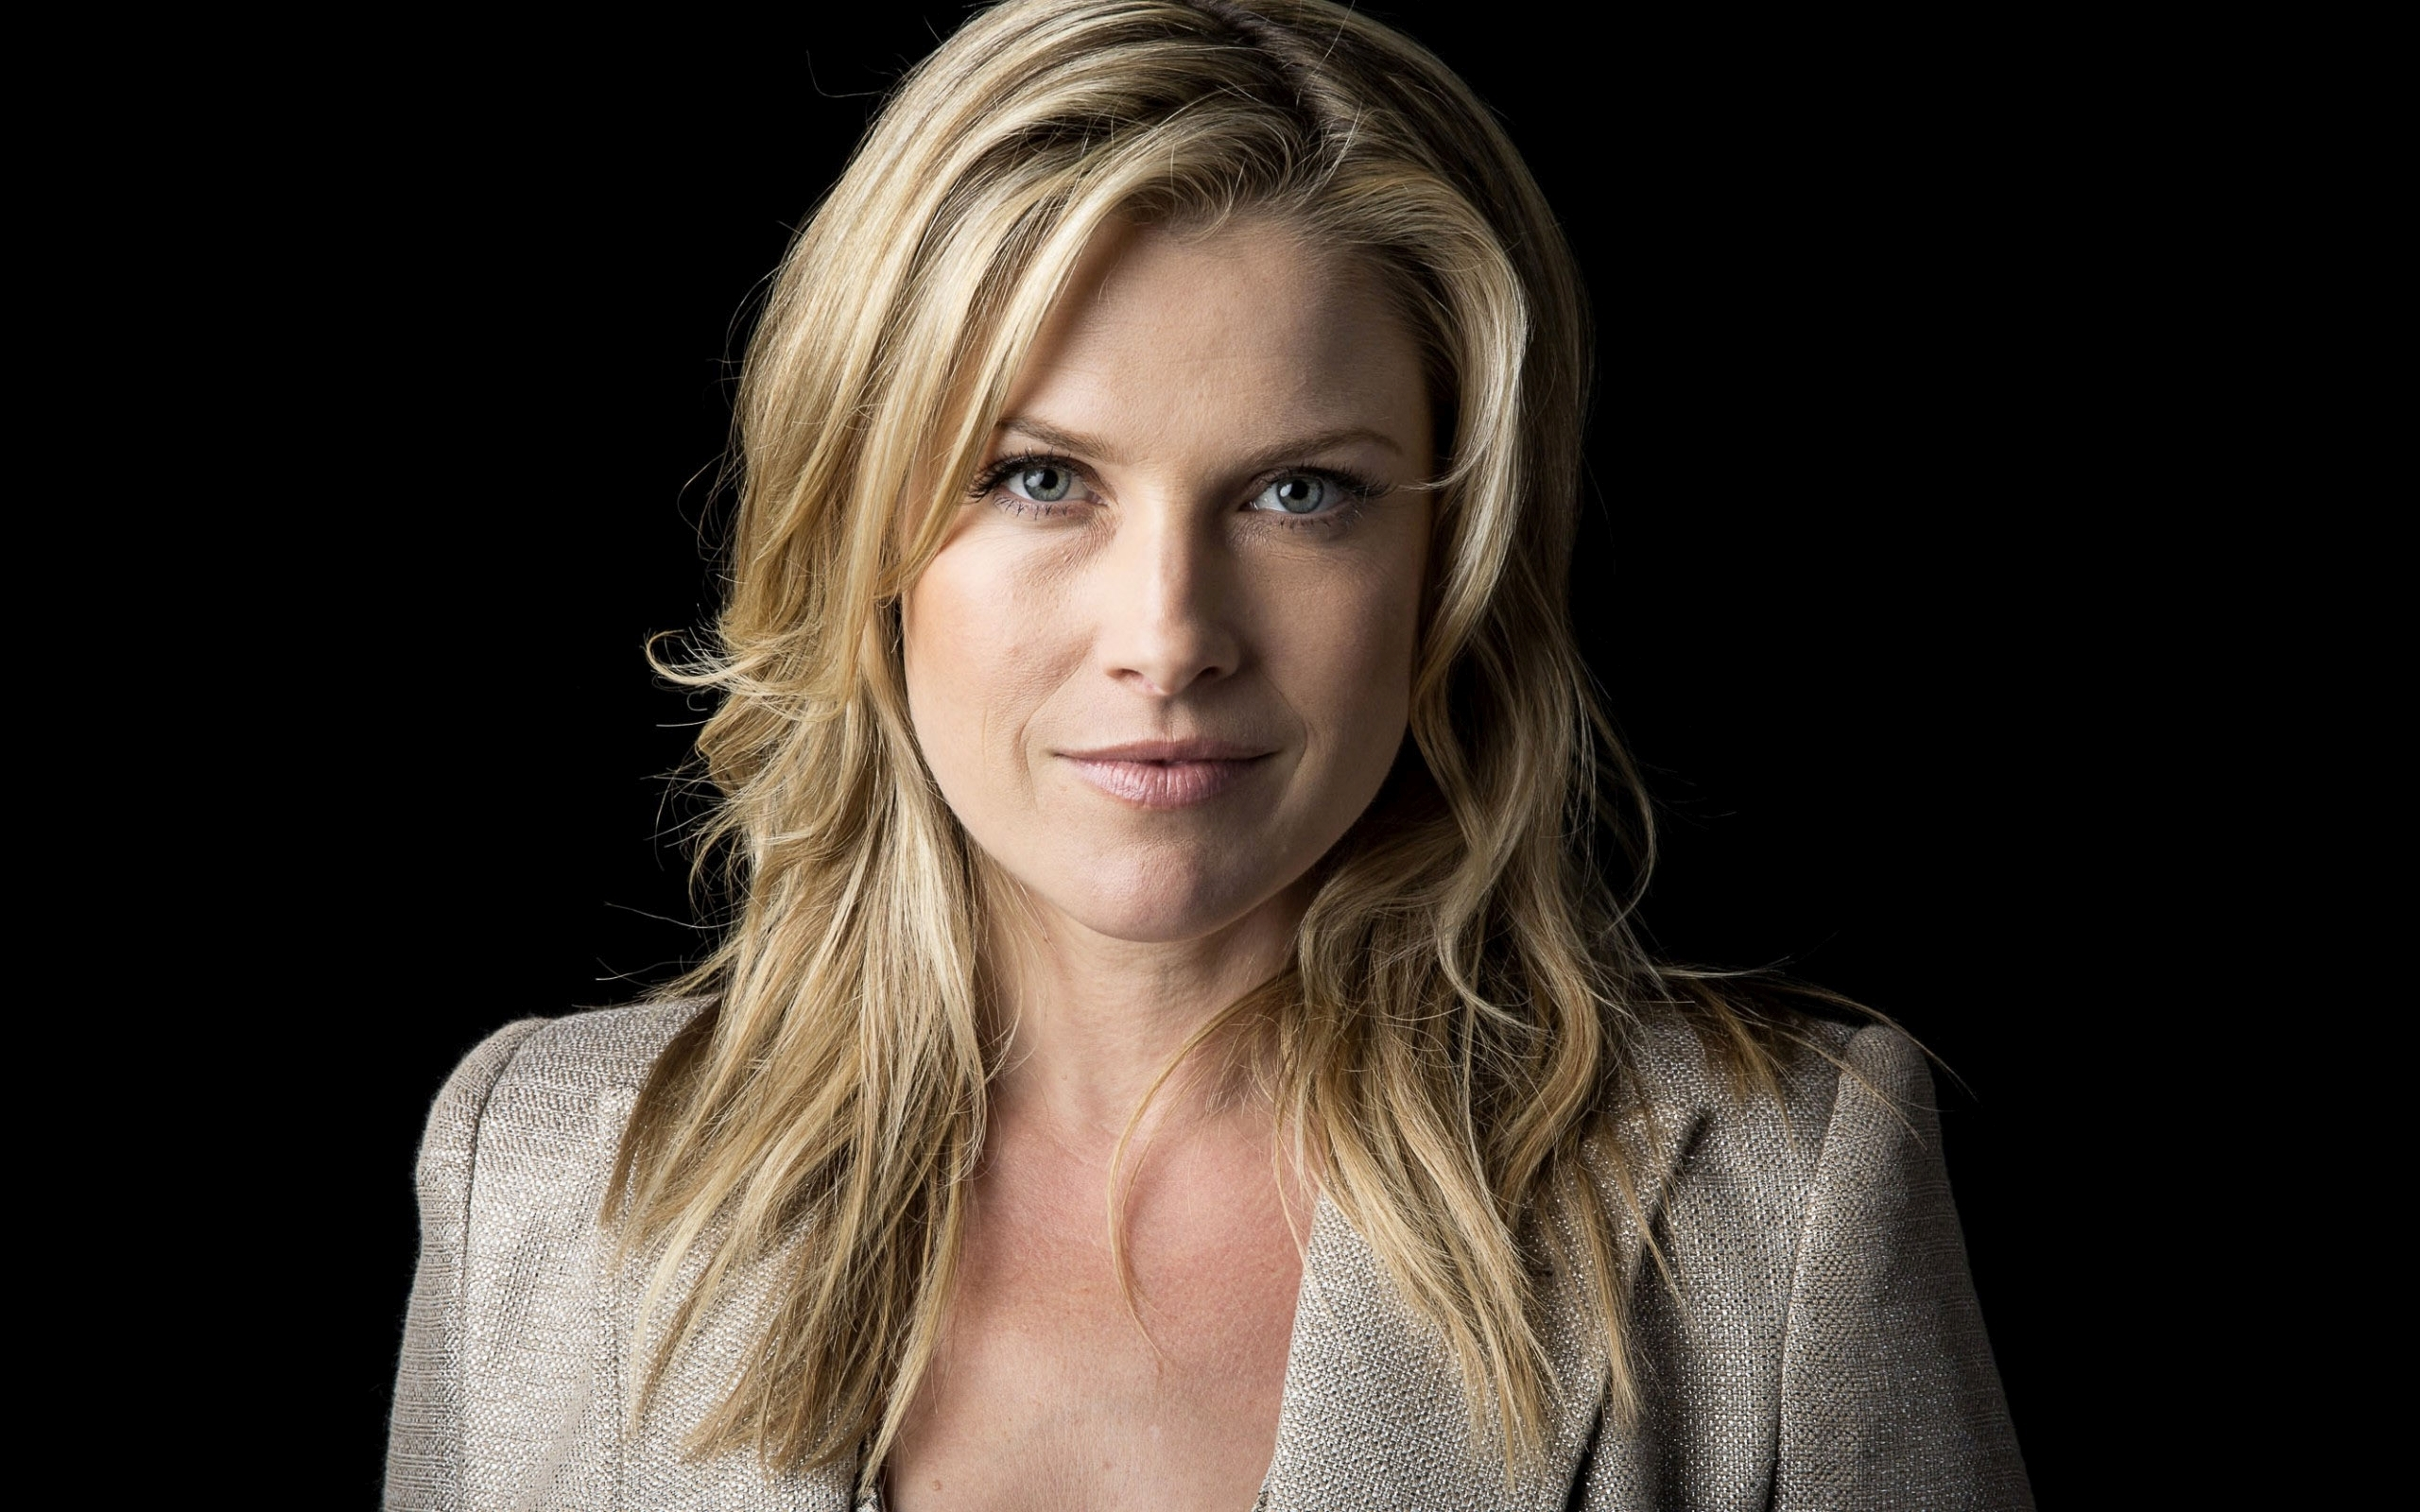 Hd Wallpaper Cars 2015 Ali Larter Wallpapers Full Hd Pictures